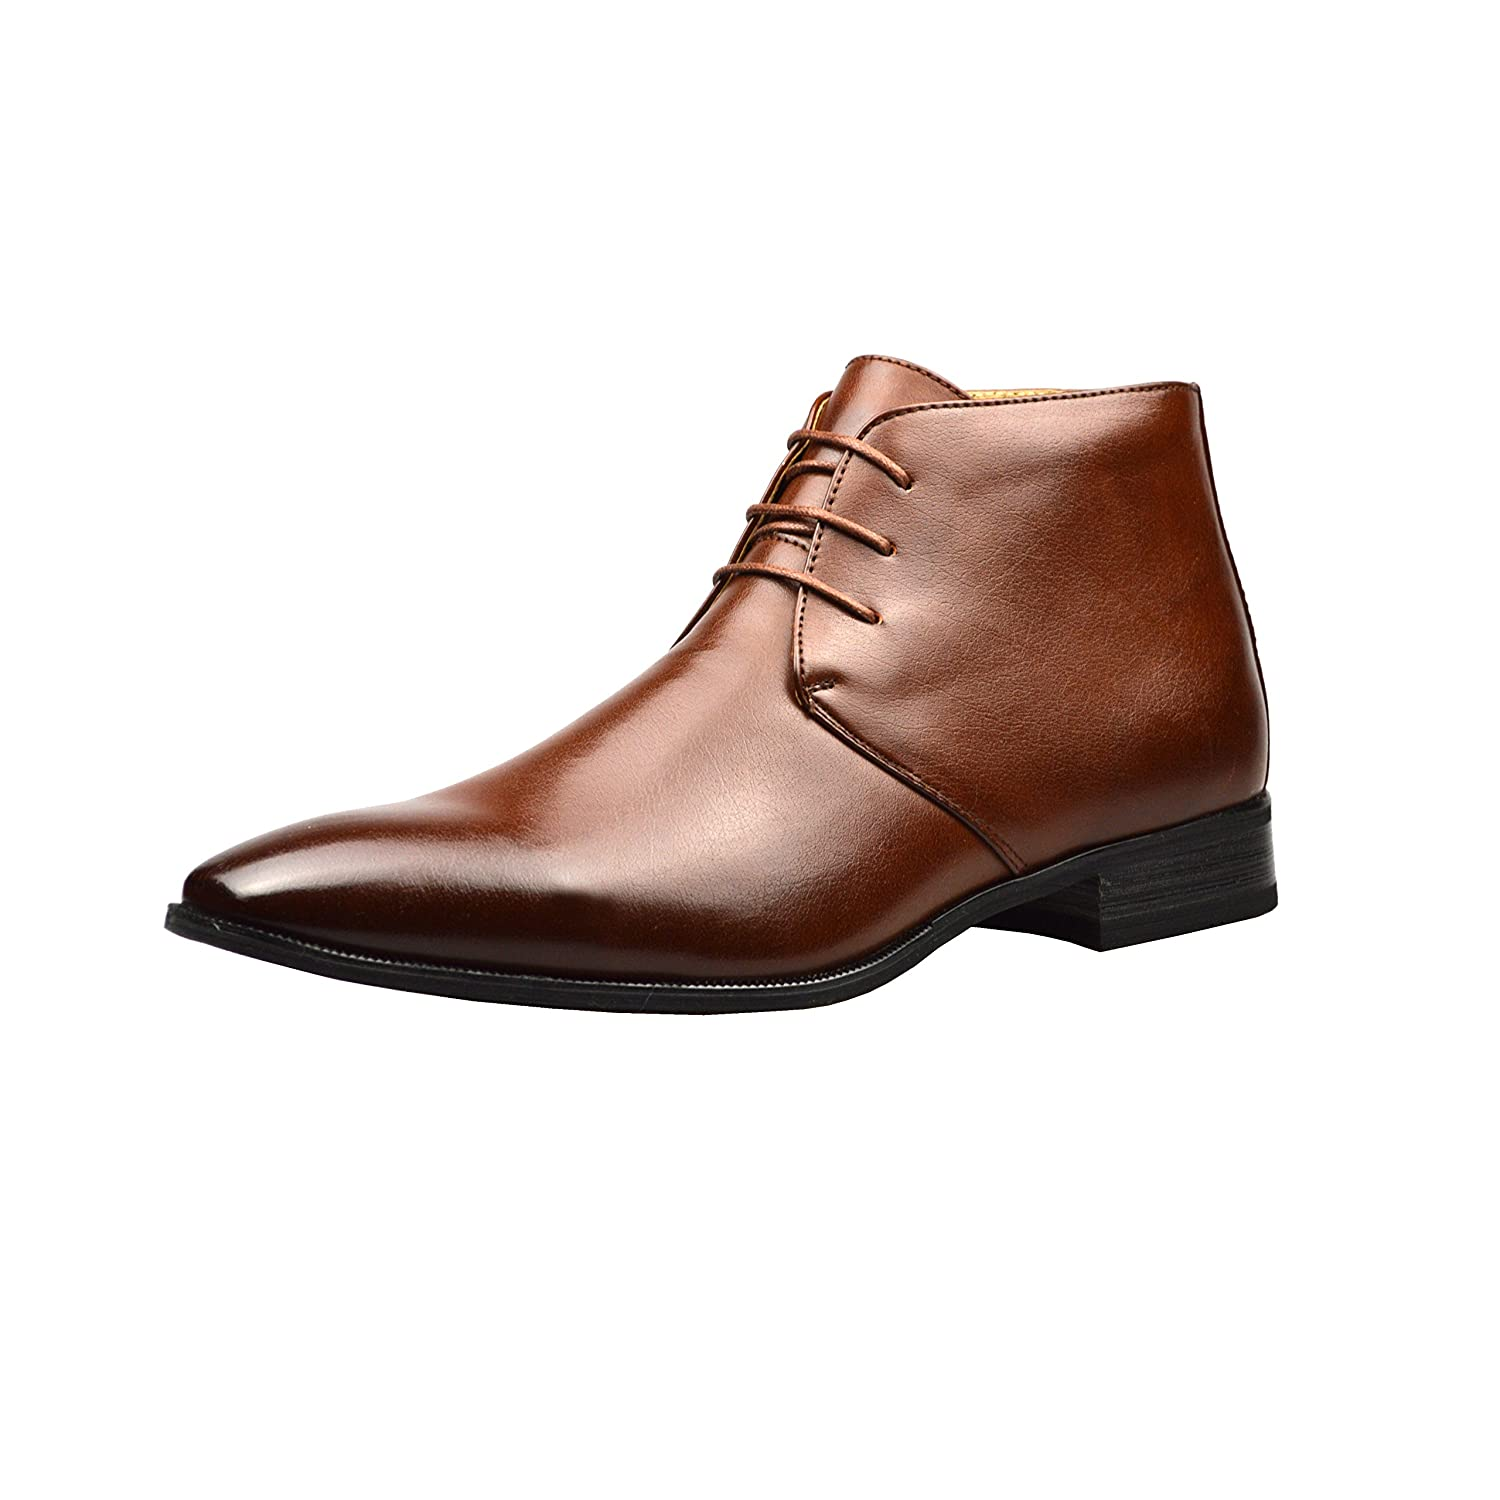 a3d294a461a ClassyDude Mens Brown Leather Smart Formal Casual Lace Up Boots Shoes UK  Size 6 7 8 9 10 11